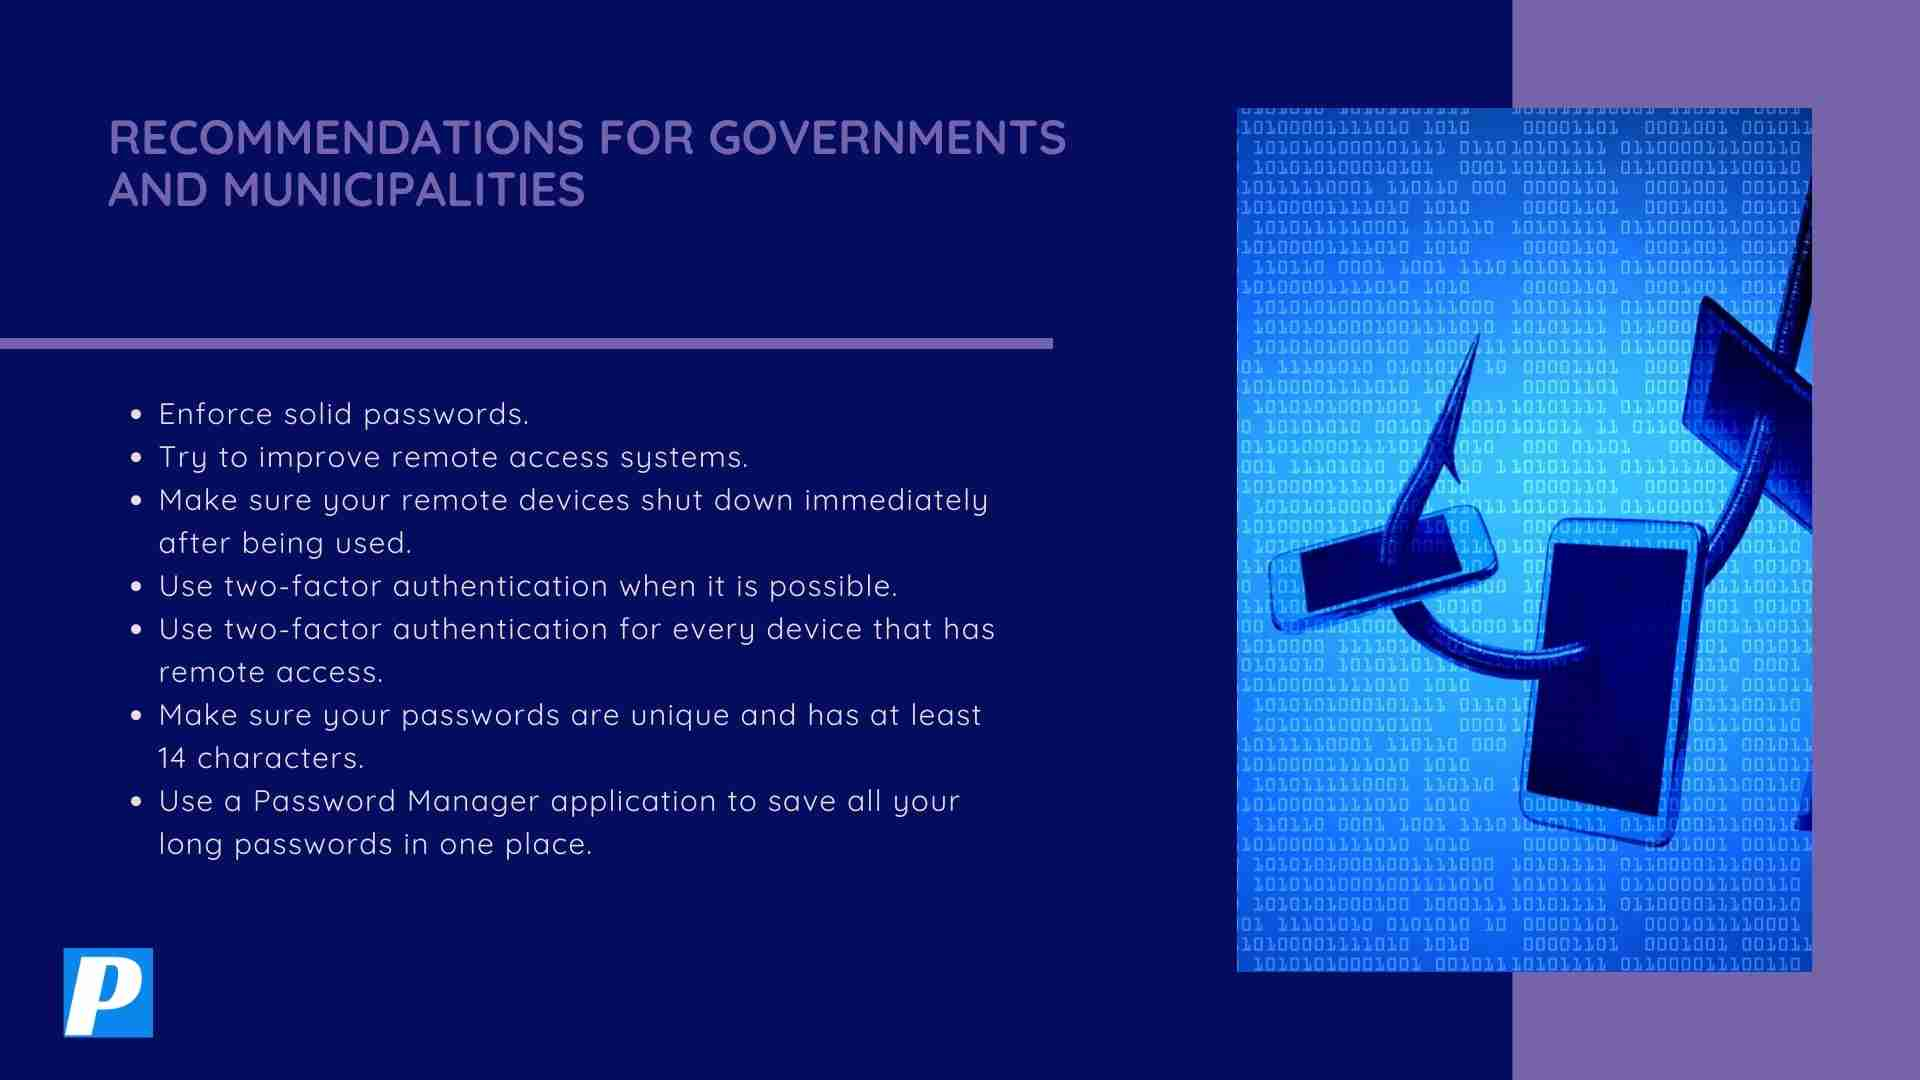 Cyberattacks towards local governments in 2020